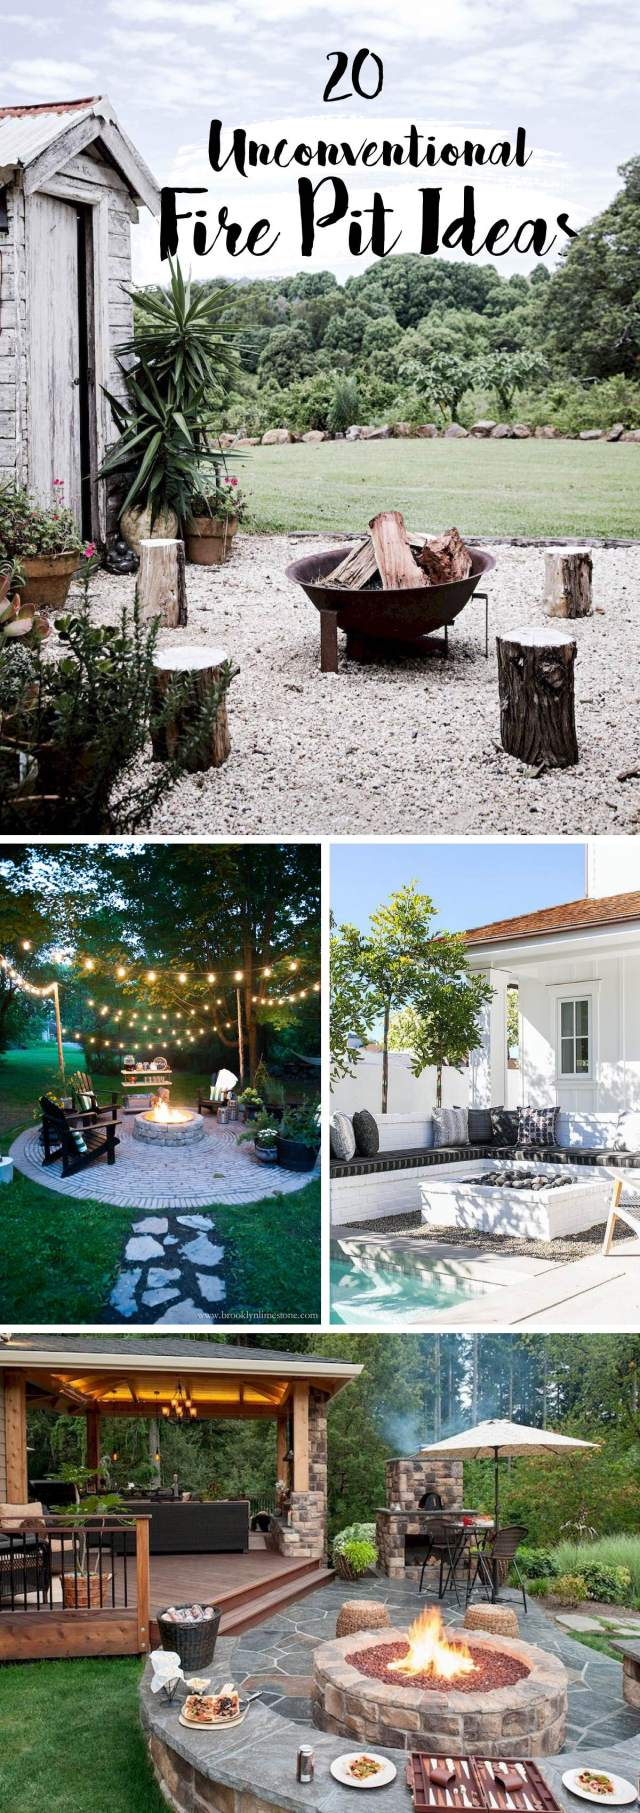 20 Unconventional Fire Pit Ideas Making The Yard An Even More Cherishing Place